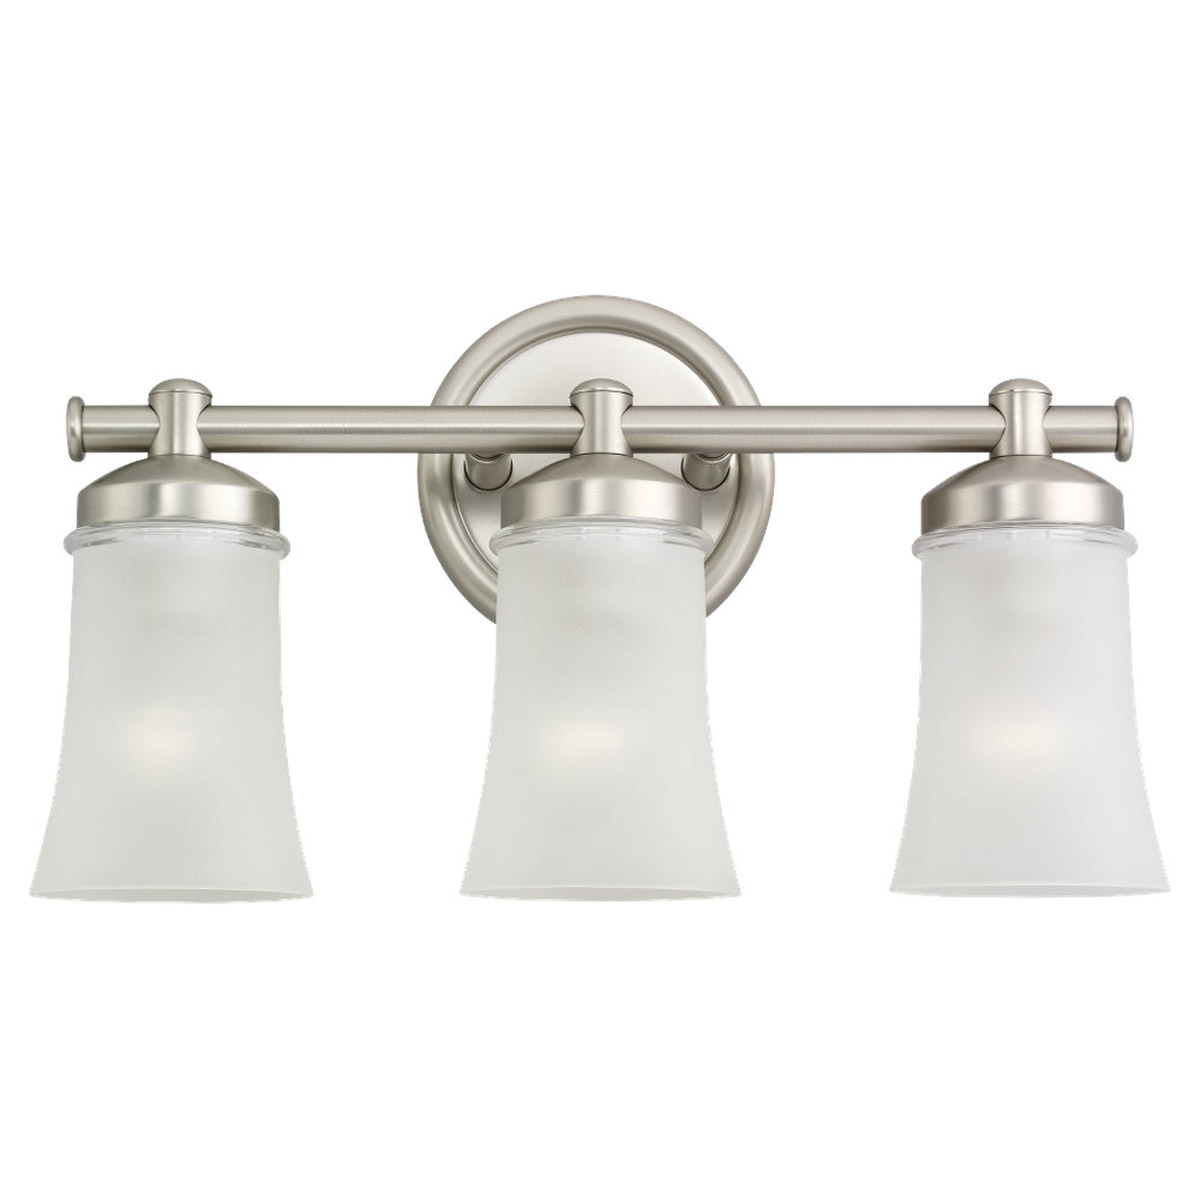 Sea Gull Lighting Newport 3 Light Bath Vanity in Antique Brushed Nickel 44484-965